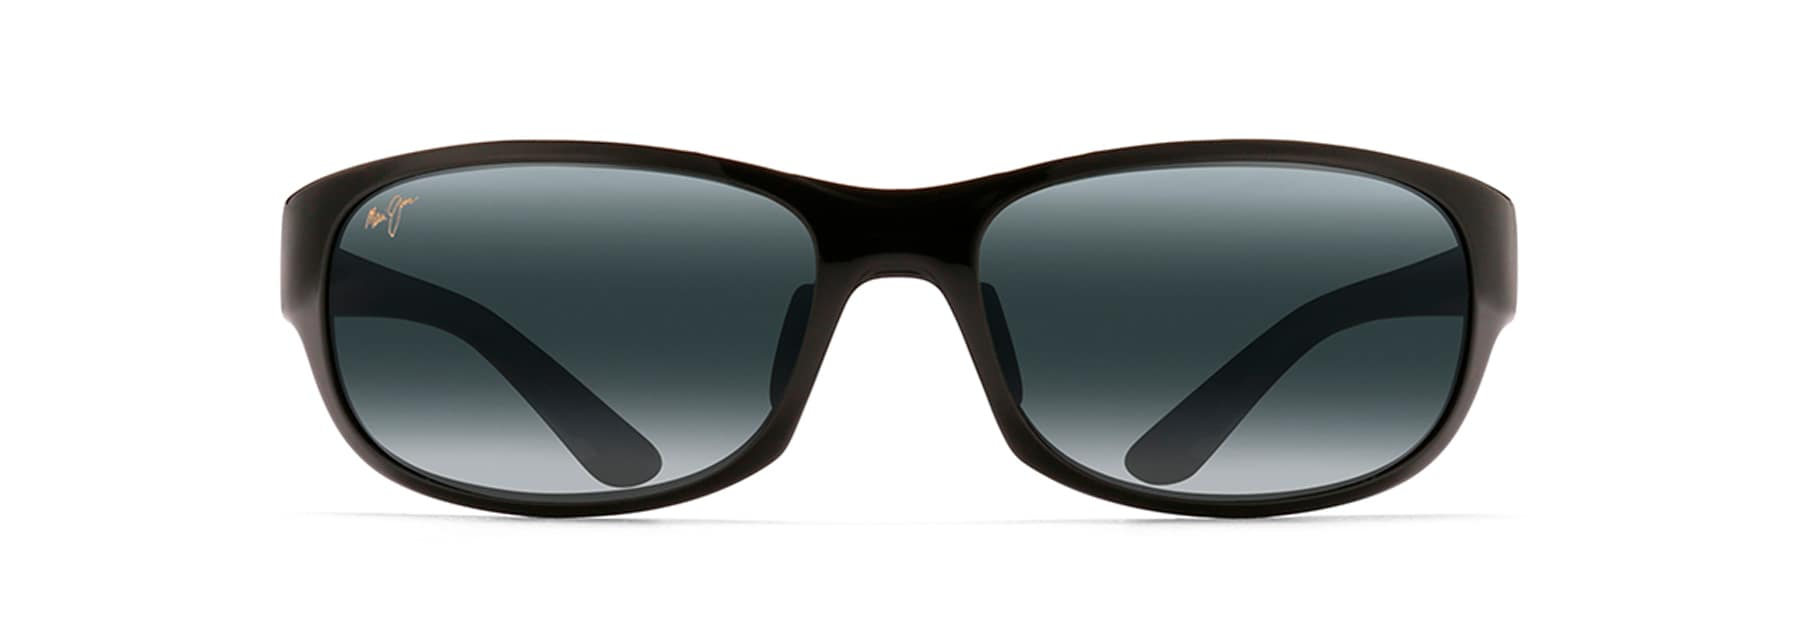 twin falls polarized sunglasses maui jim®